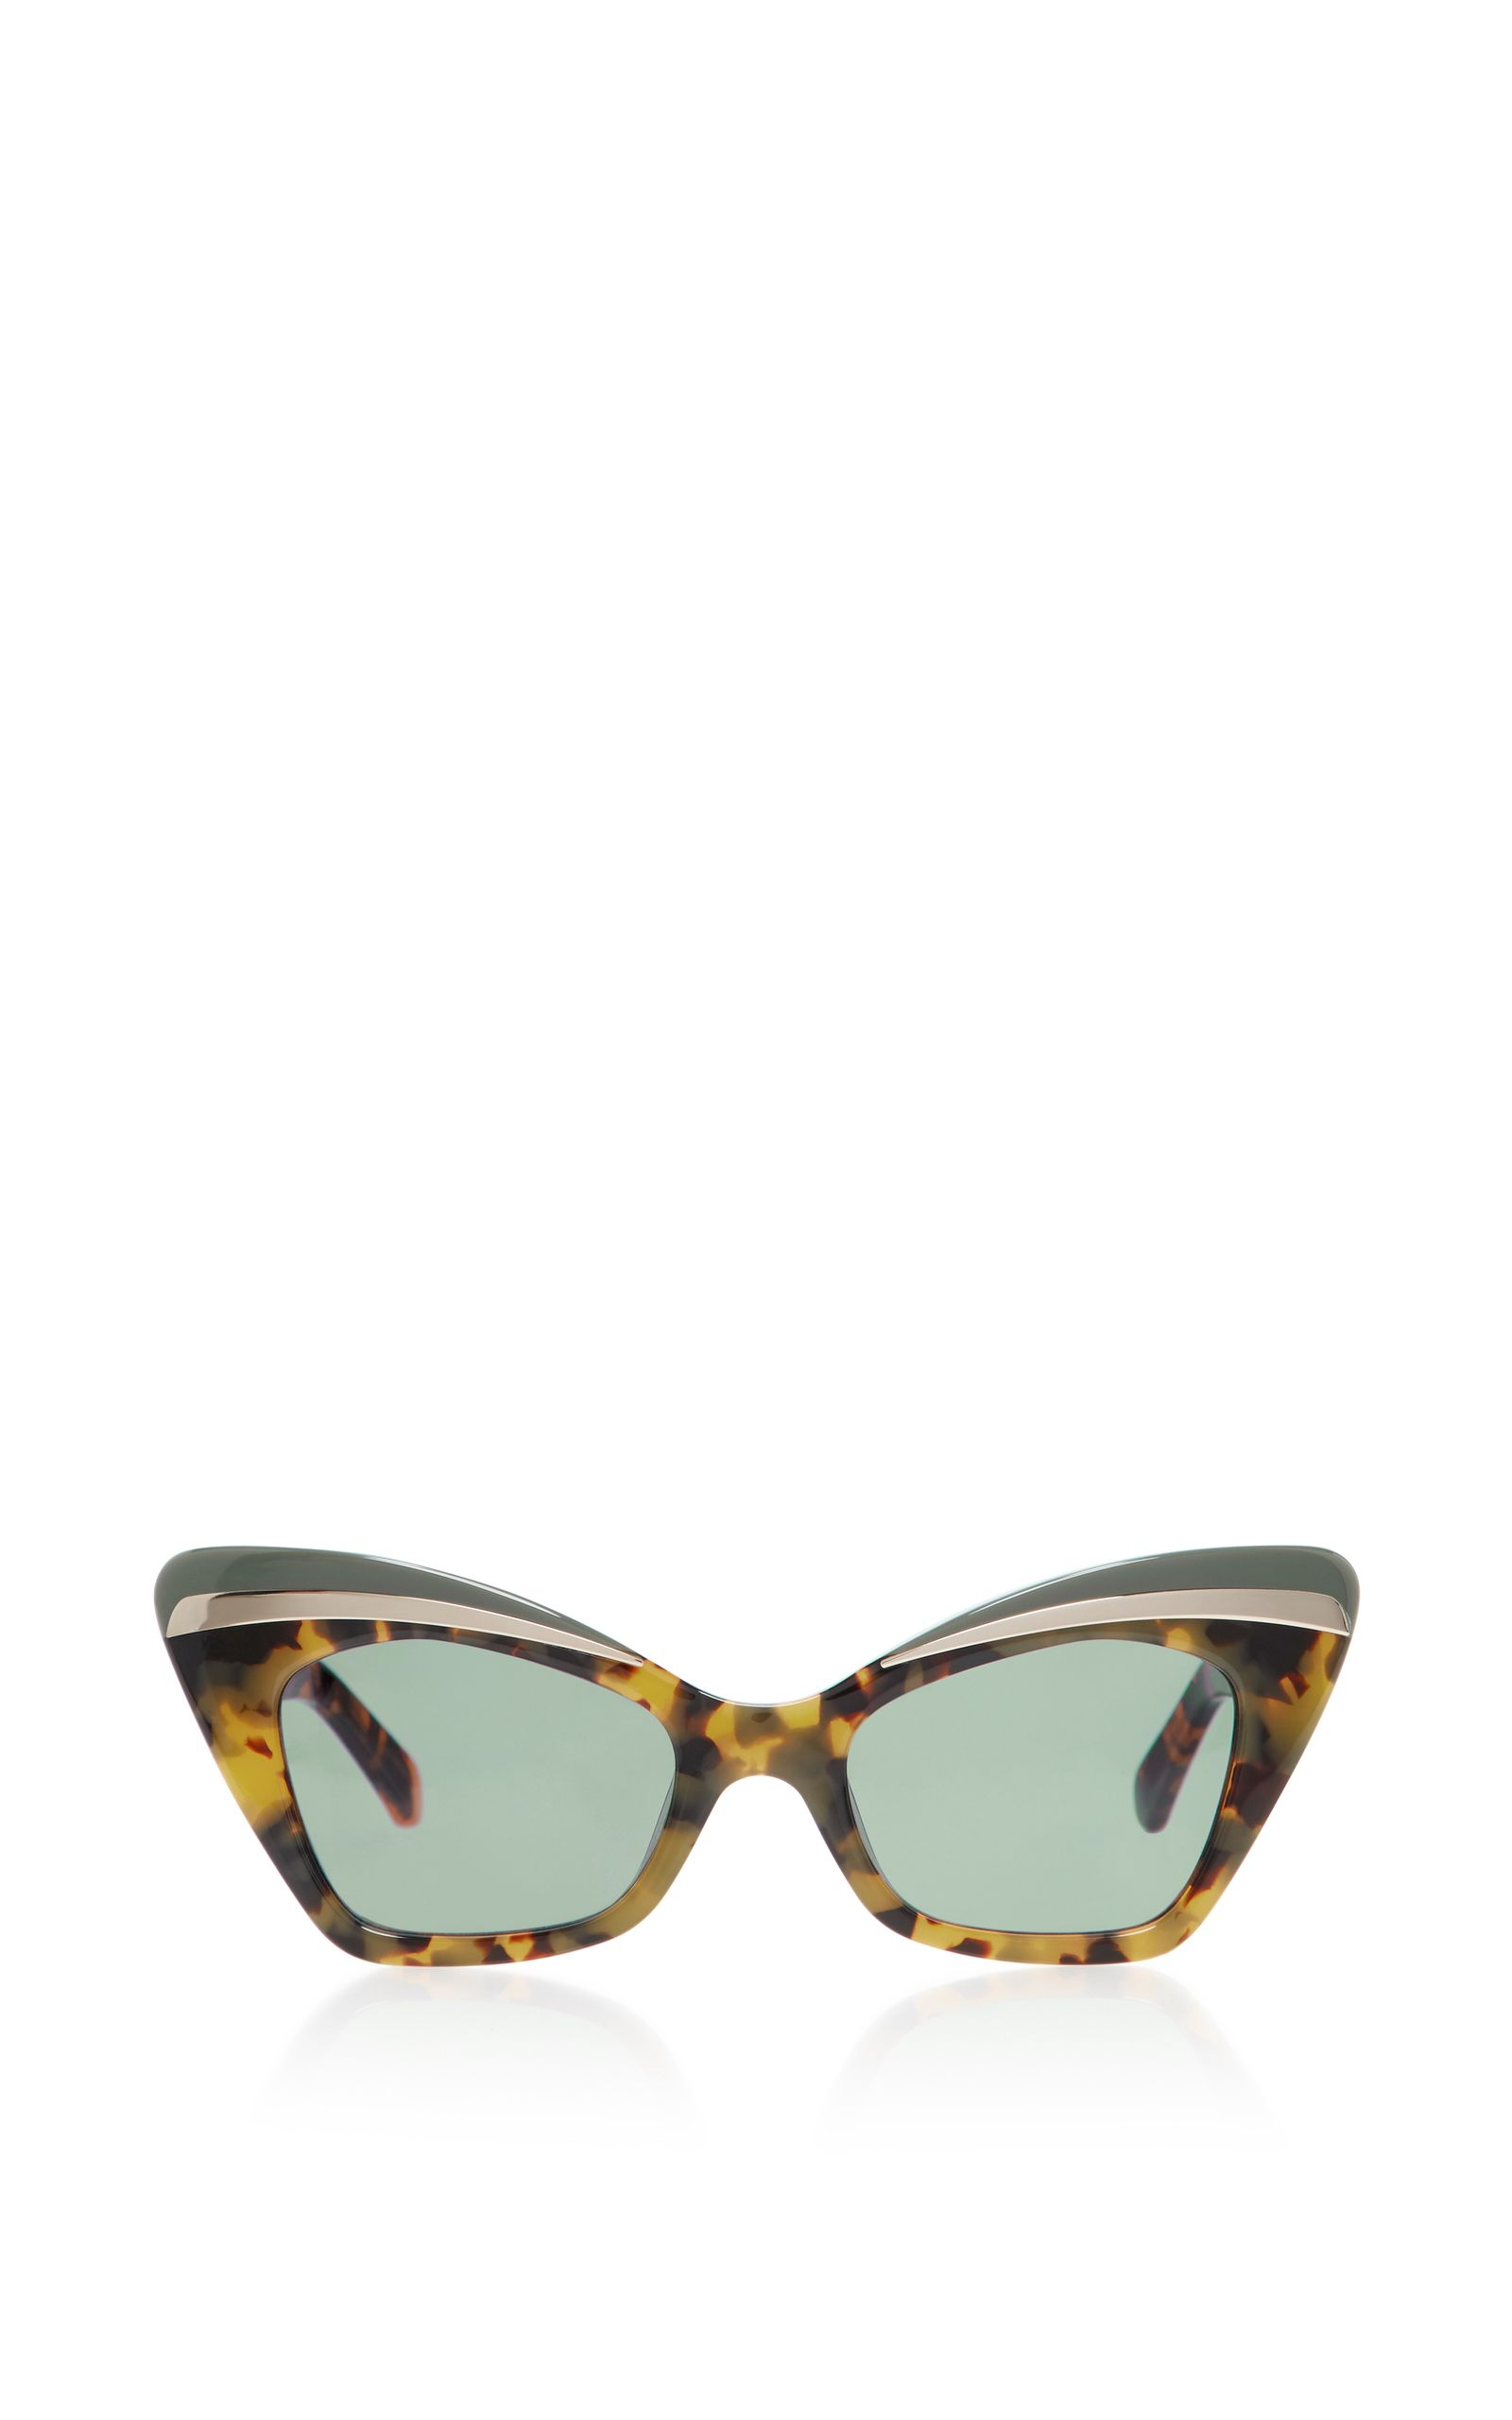 Babou Black Cat-Eye Acetate and Metal Sunglasses Karen Walker Q9ntniGO